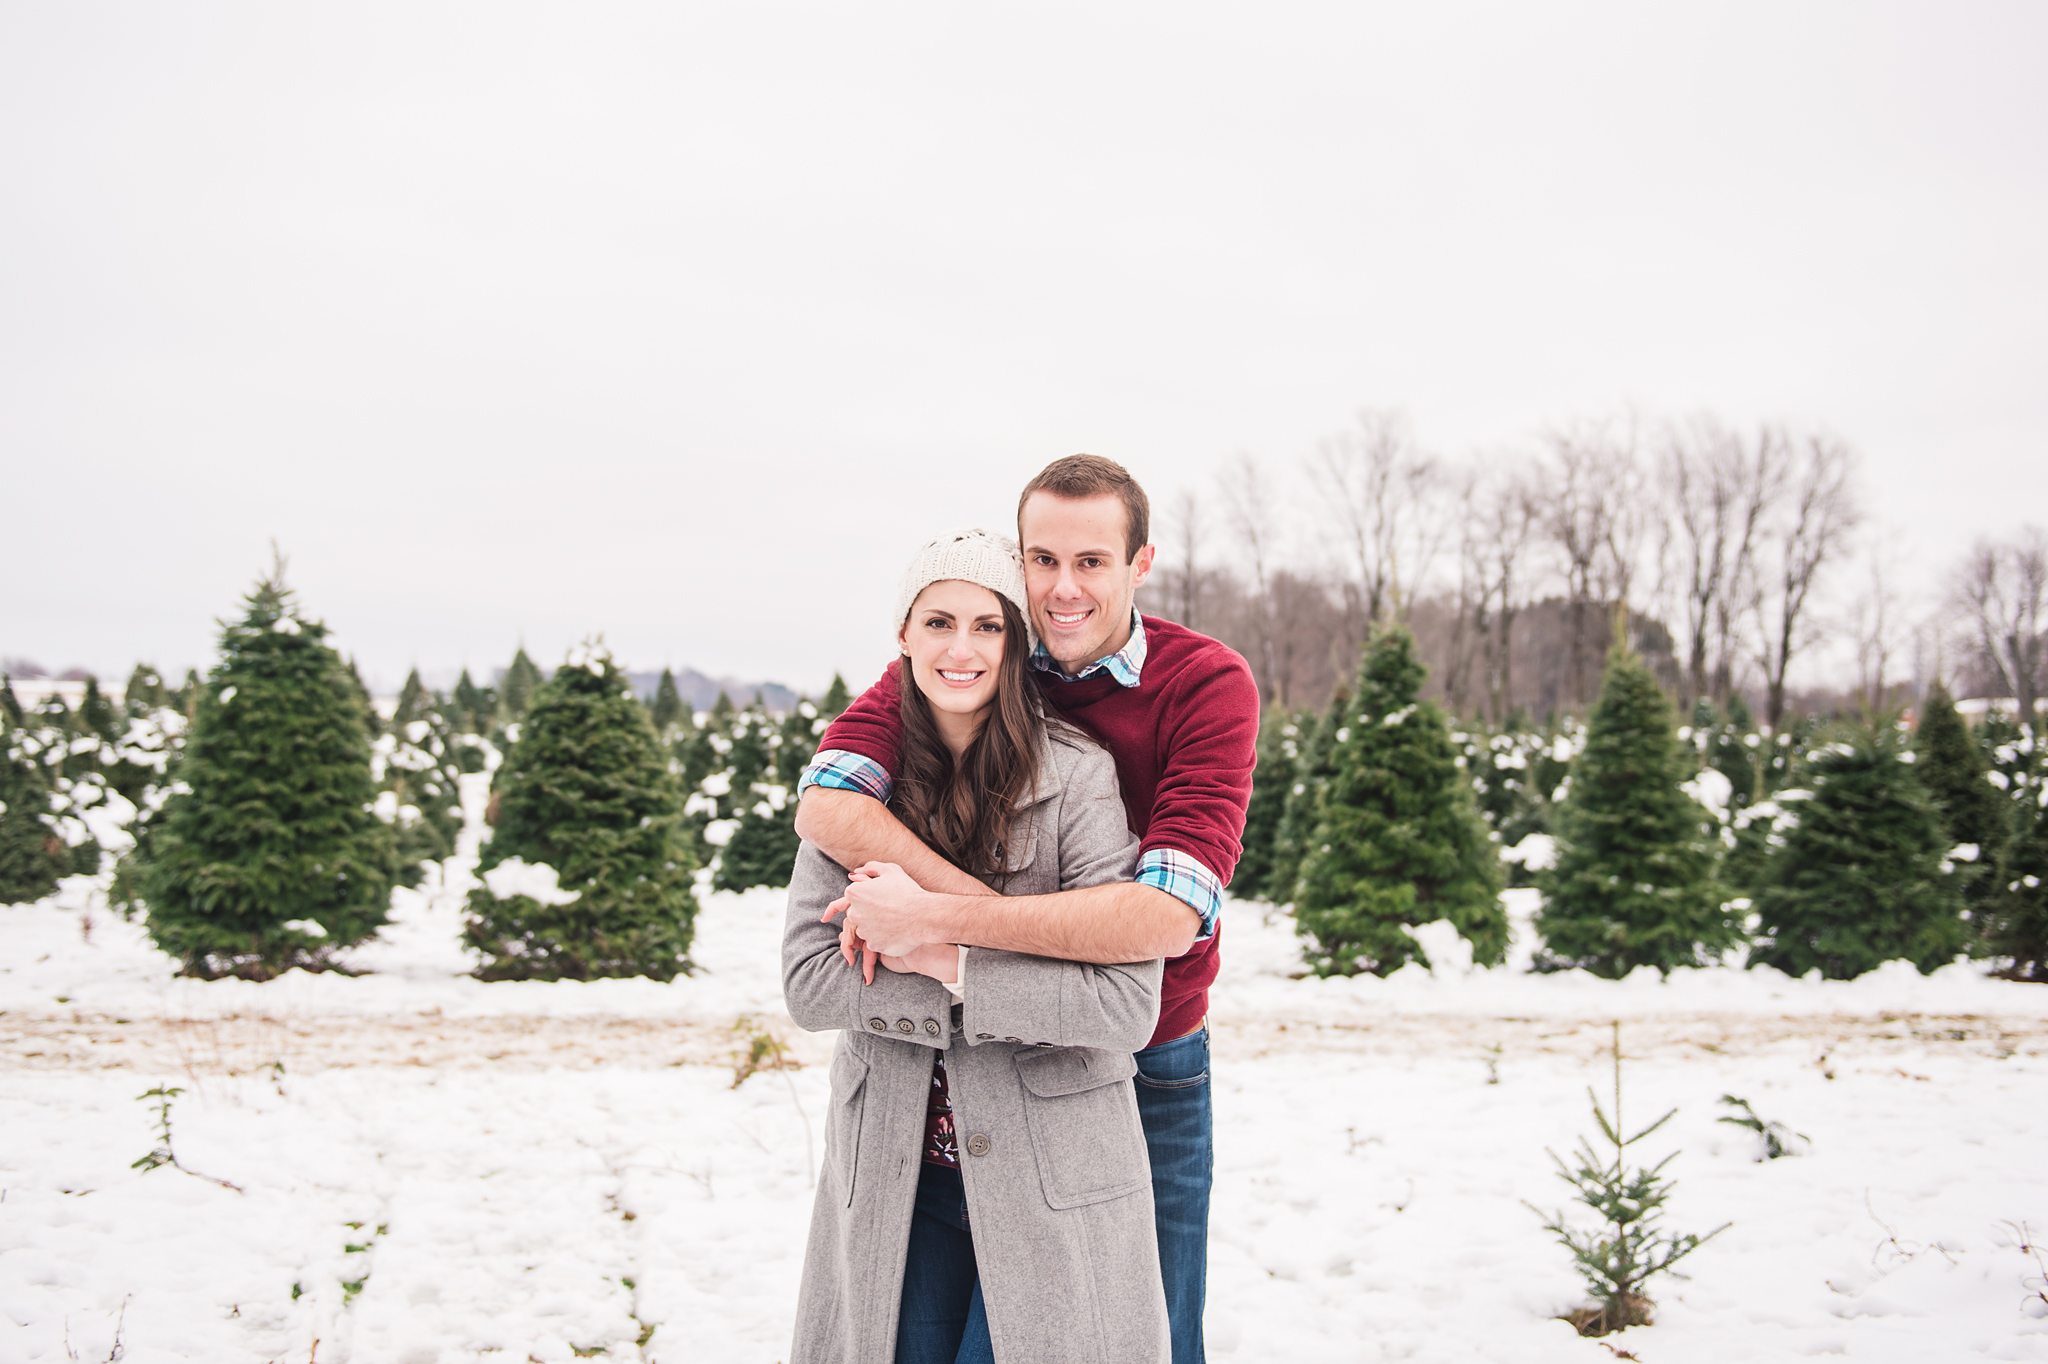 Woody_Acres_Rochester_Engagement_Session_JILL_STUDIO_Rochester_NY_Photographer_153559.jpg